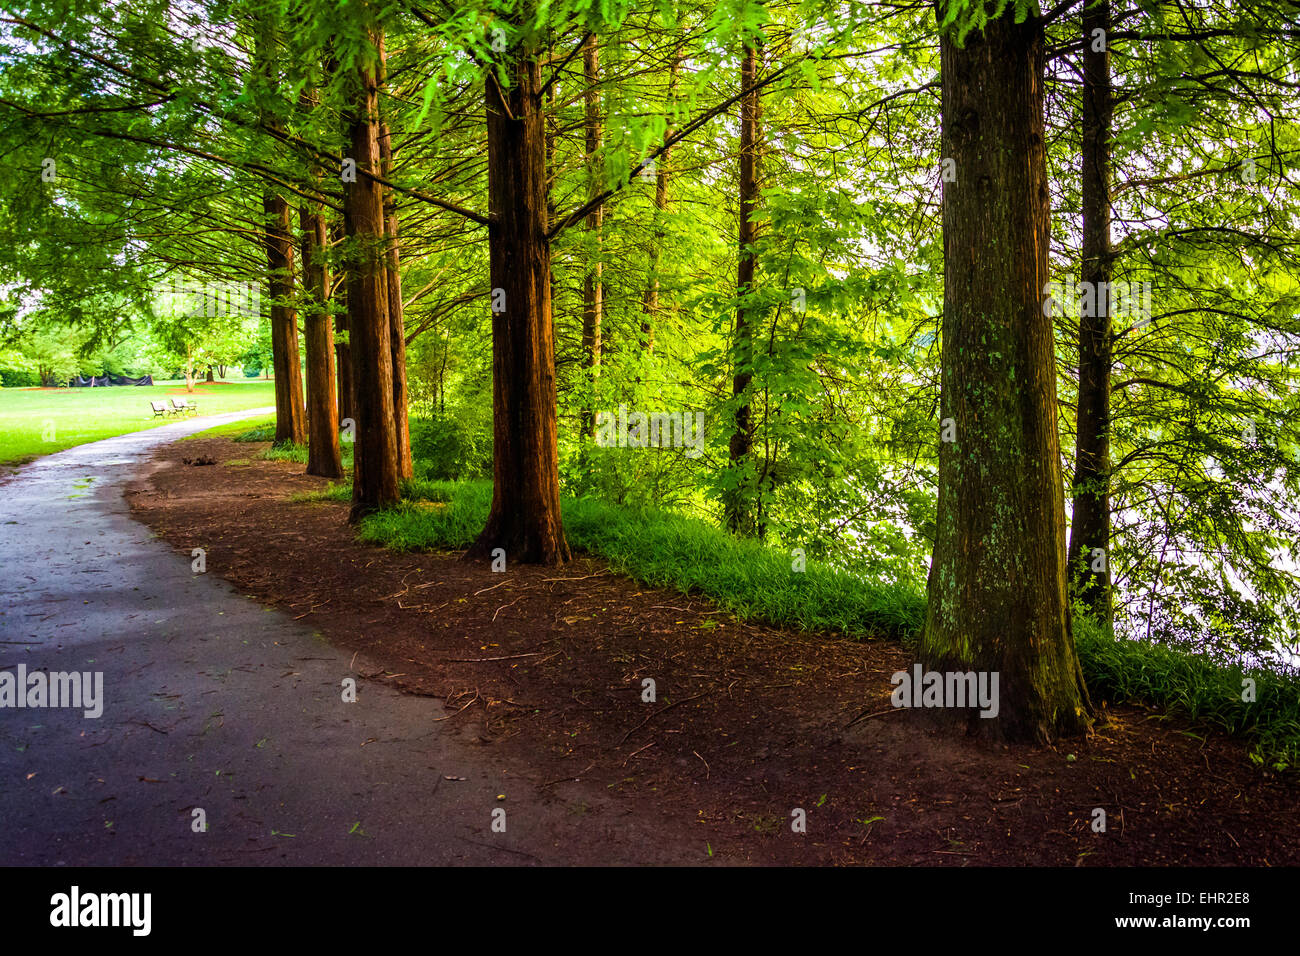 Trees along a path at Piedmont Park in Atlanta, Georgia. - Stock Image